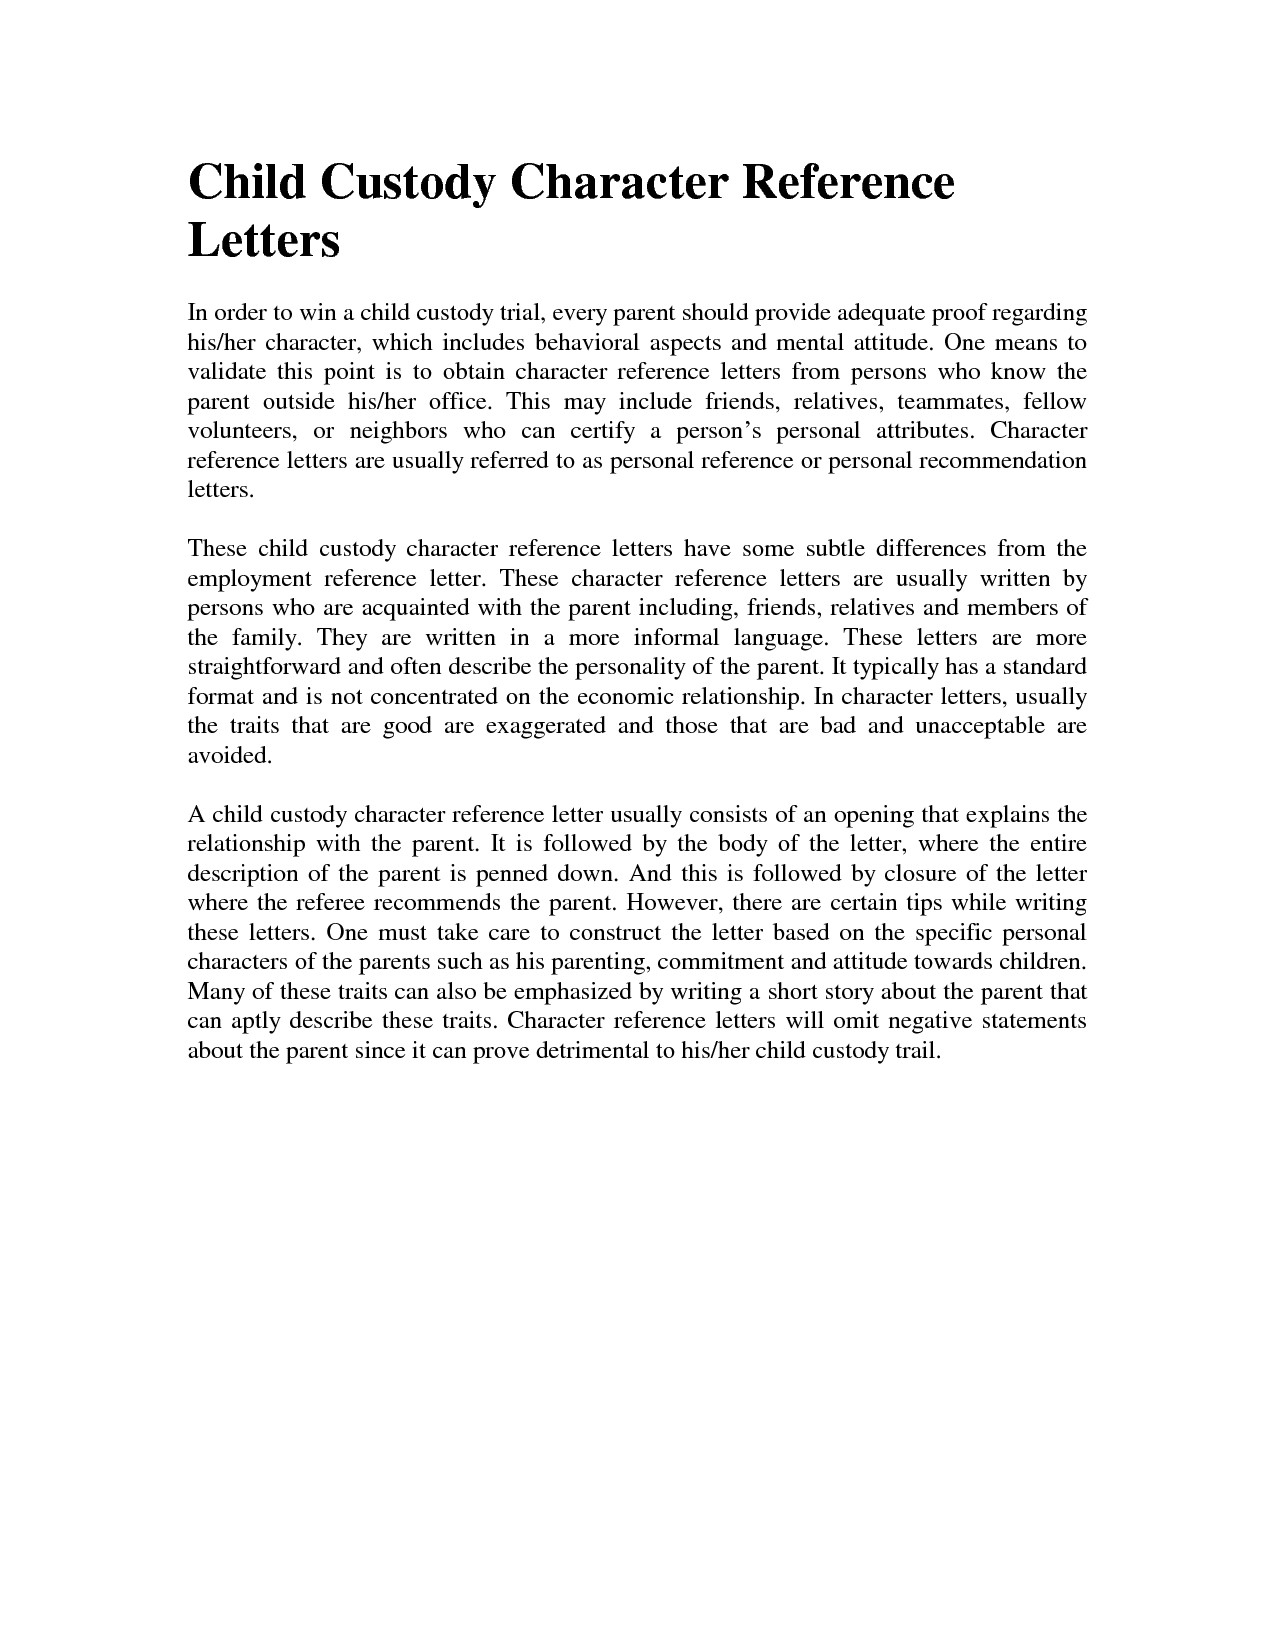 Character Reference Letter For Court Child Custody Template Examples